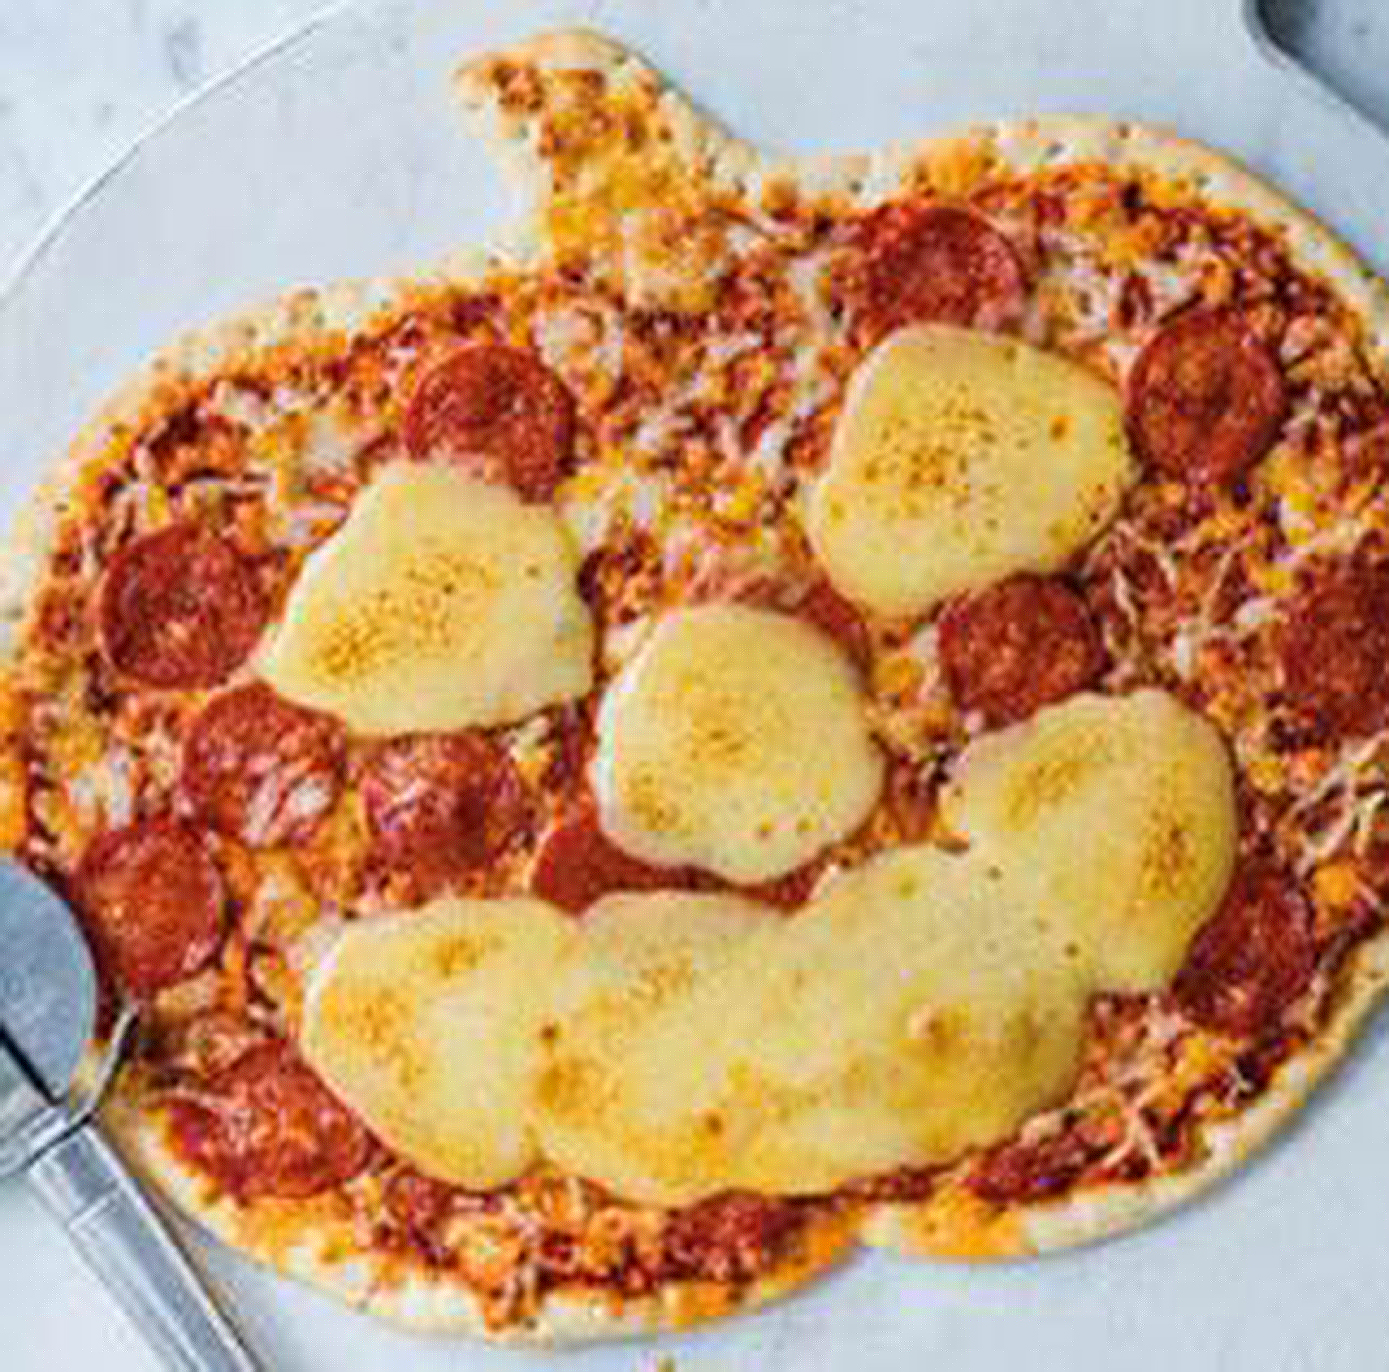 Asda's Halloween pizzas are back and they're shaped like spooky pumpkins